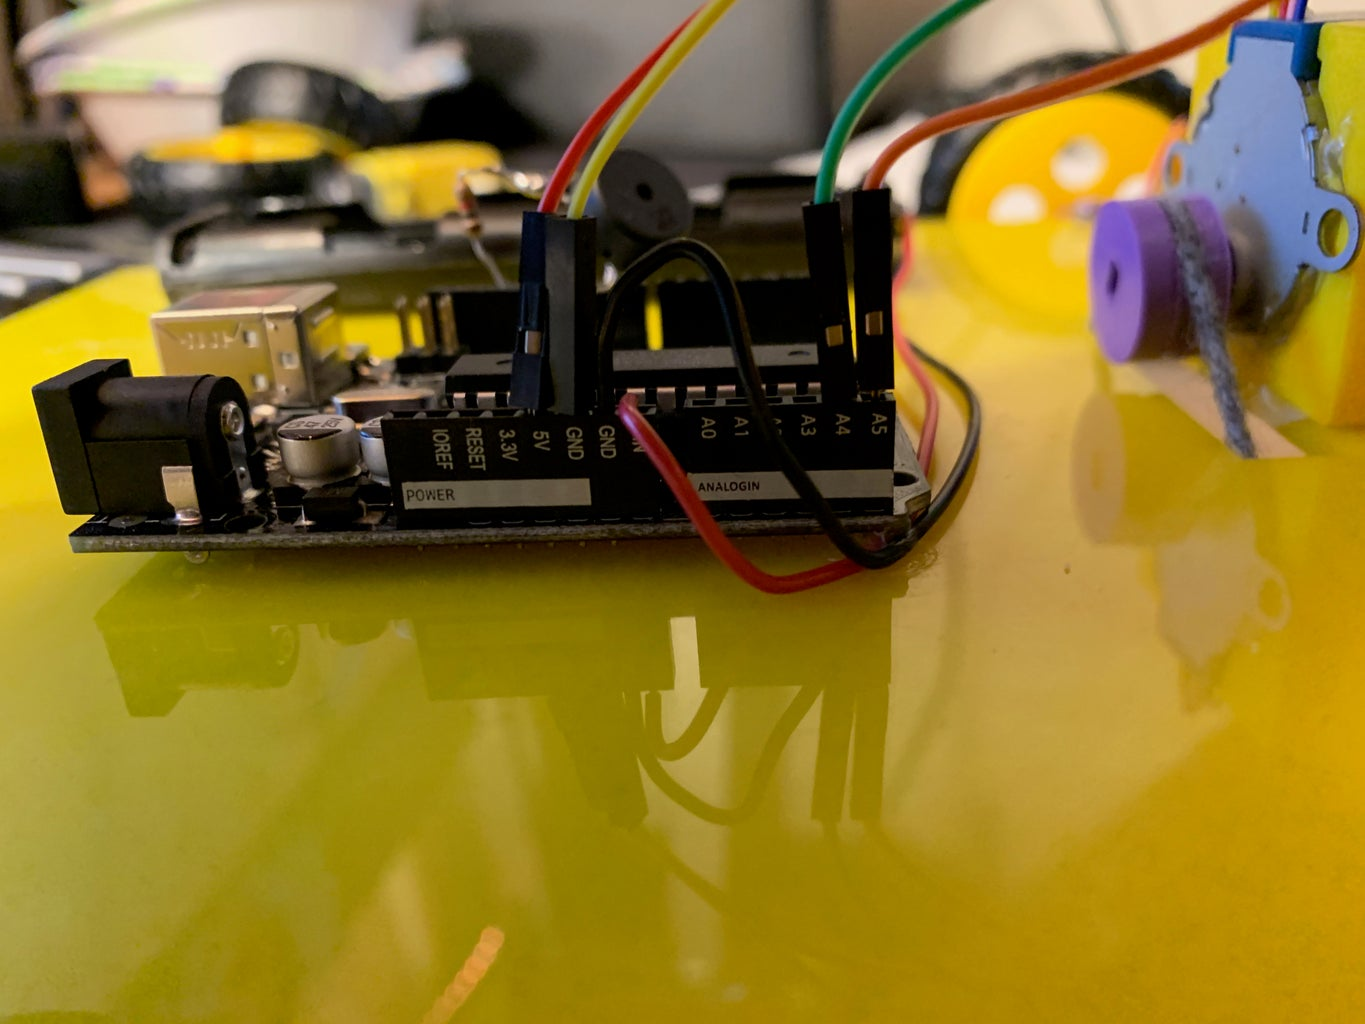 Wiring the Components